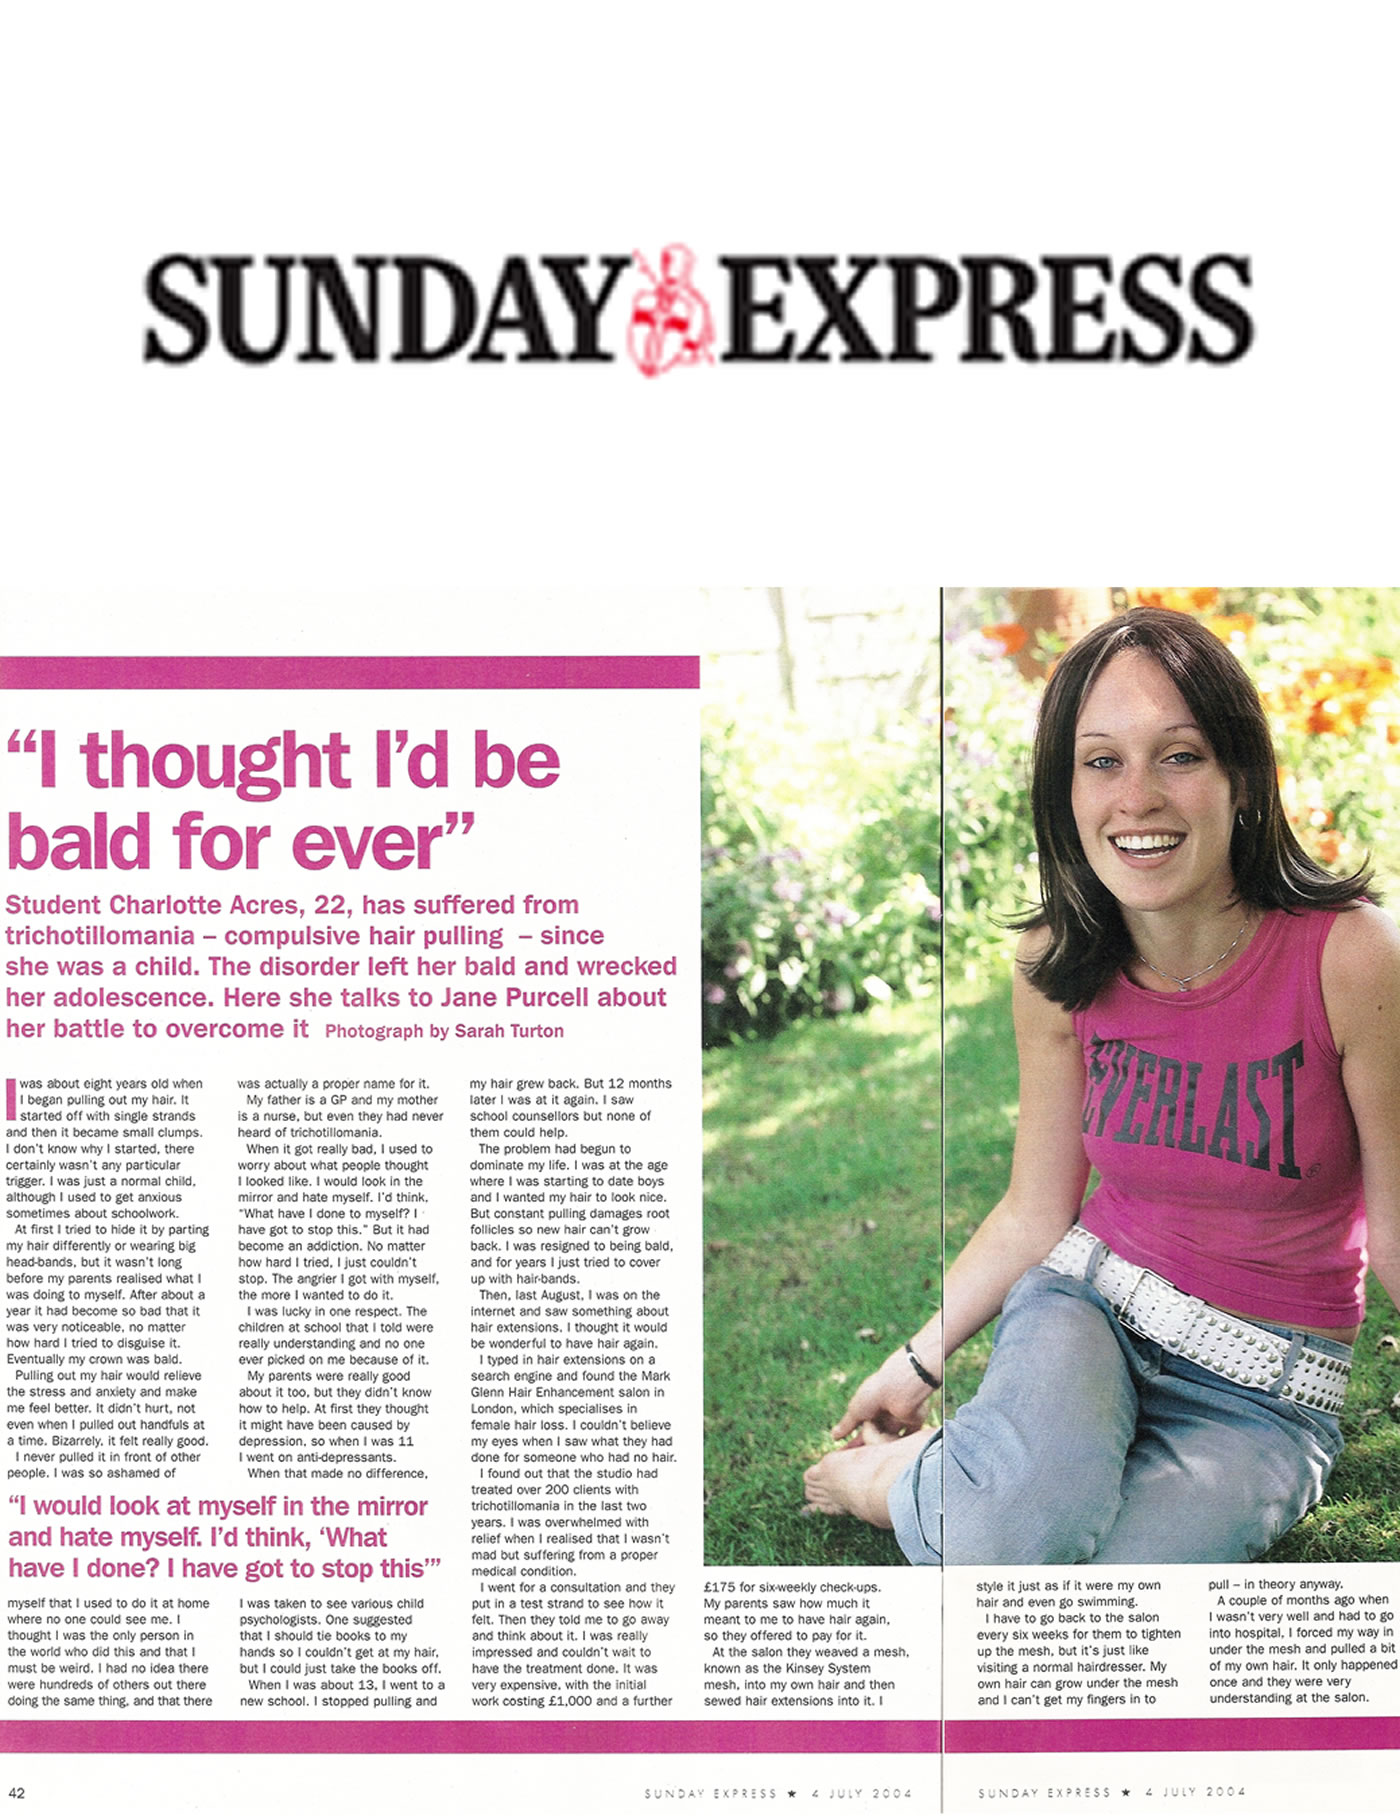 'I thought I'd be bald forever' - Trichotillomania solution from Mark Glenn in The Sunday Express